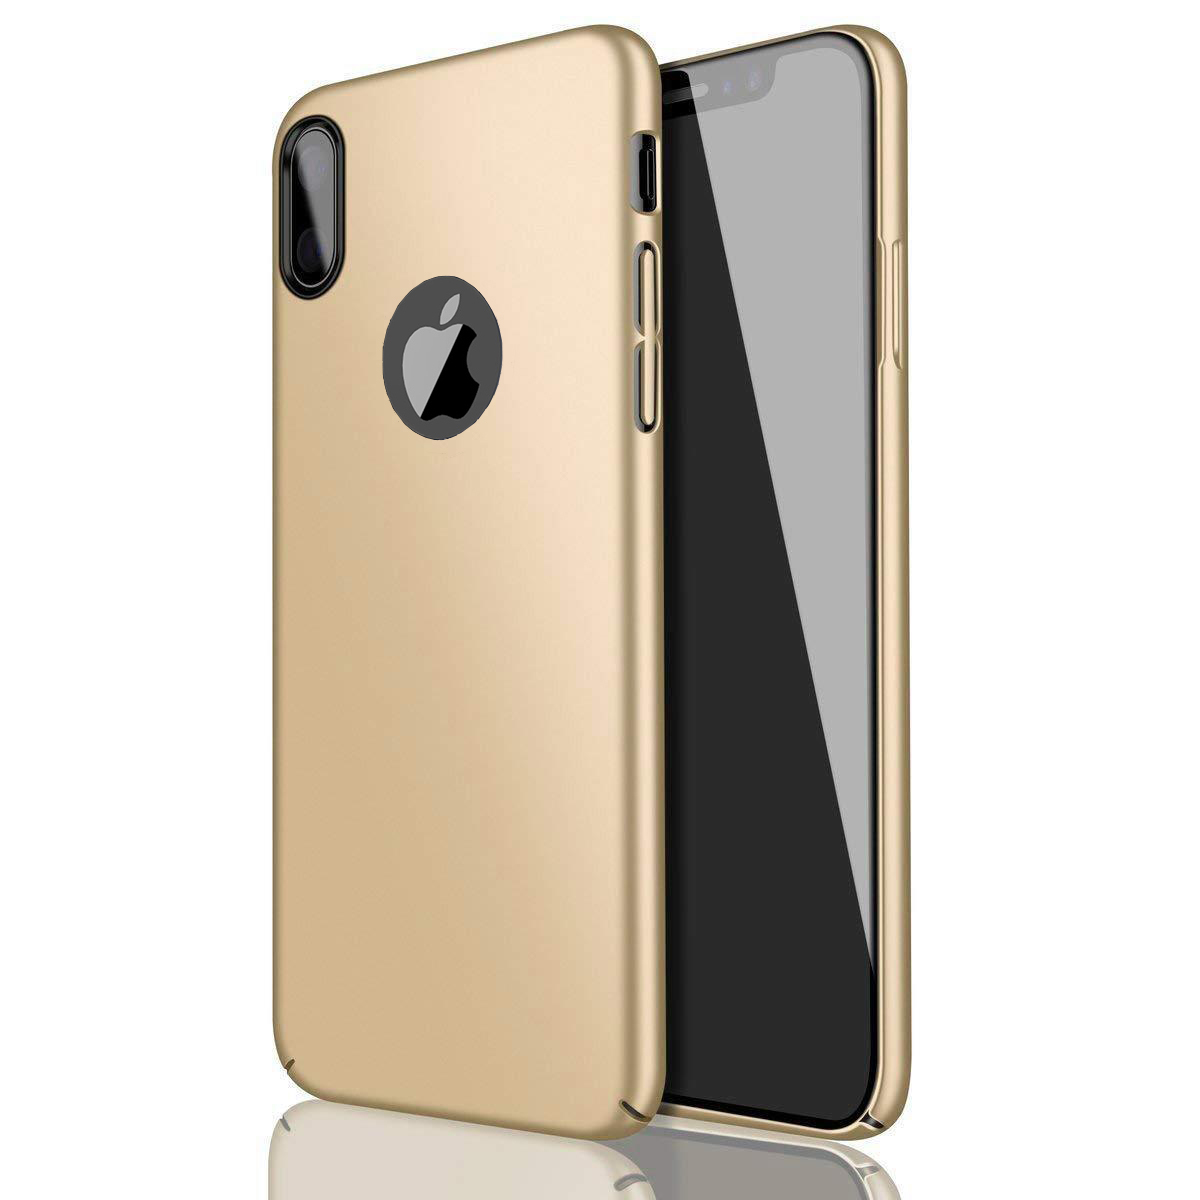 Shockproof-Hard-Back-Ultra-Thin-Slim-New-Bumper-Case-Cover-For-Apple-iPhone-X-XR miniatuur 66